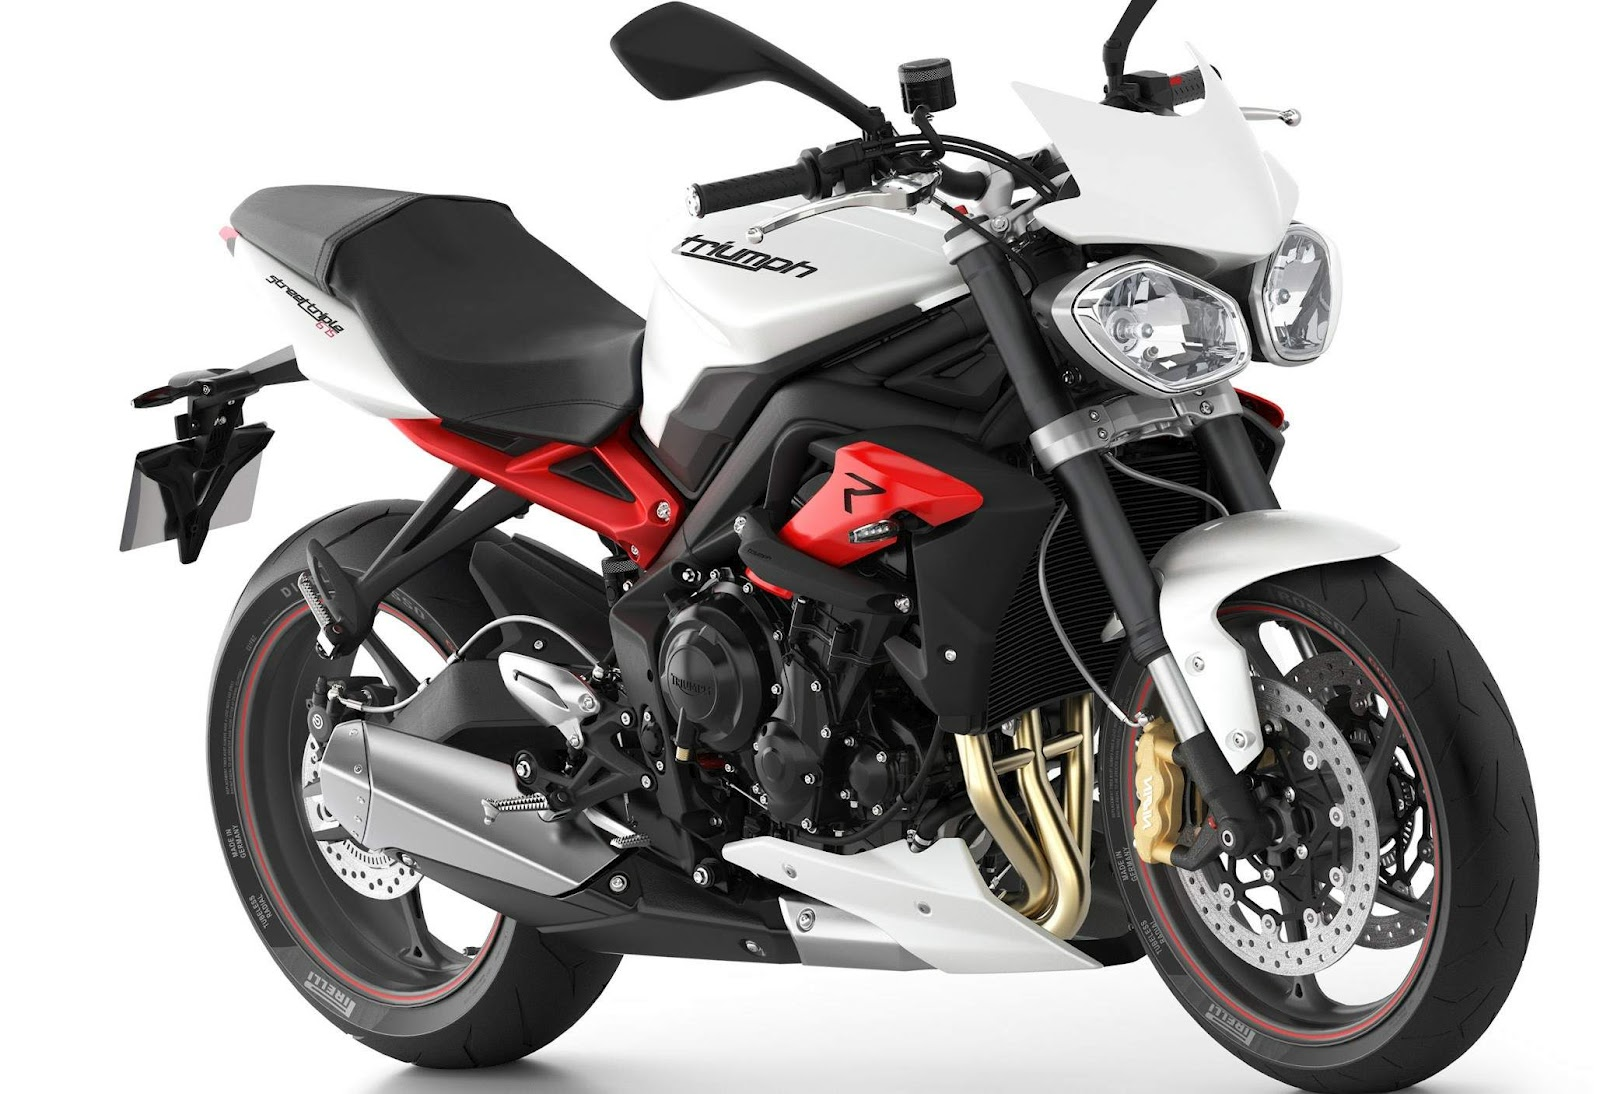 ktm duke 690 vs kawasaki z800e a2 forocoches. Black Bedroom Furniture Sets. Home Design Ideas